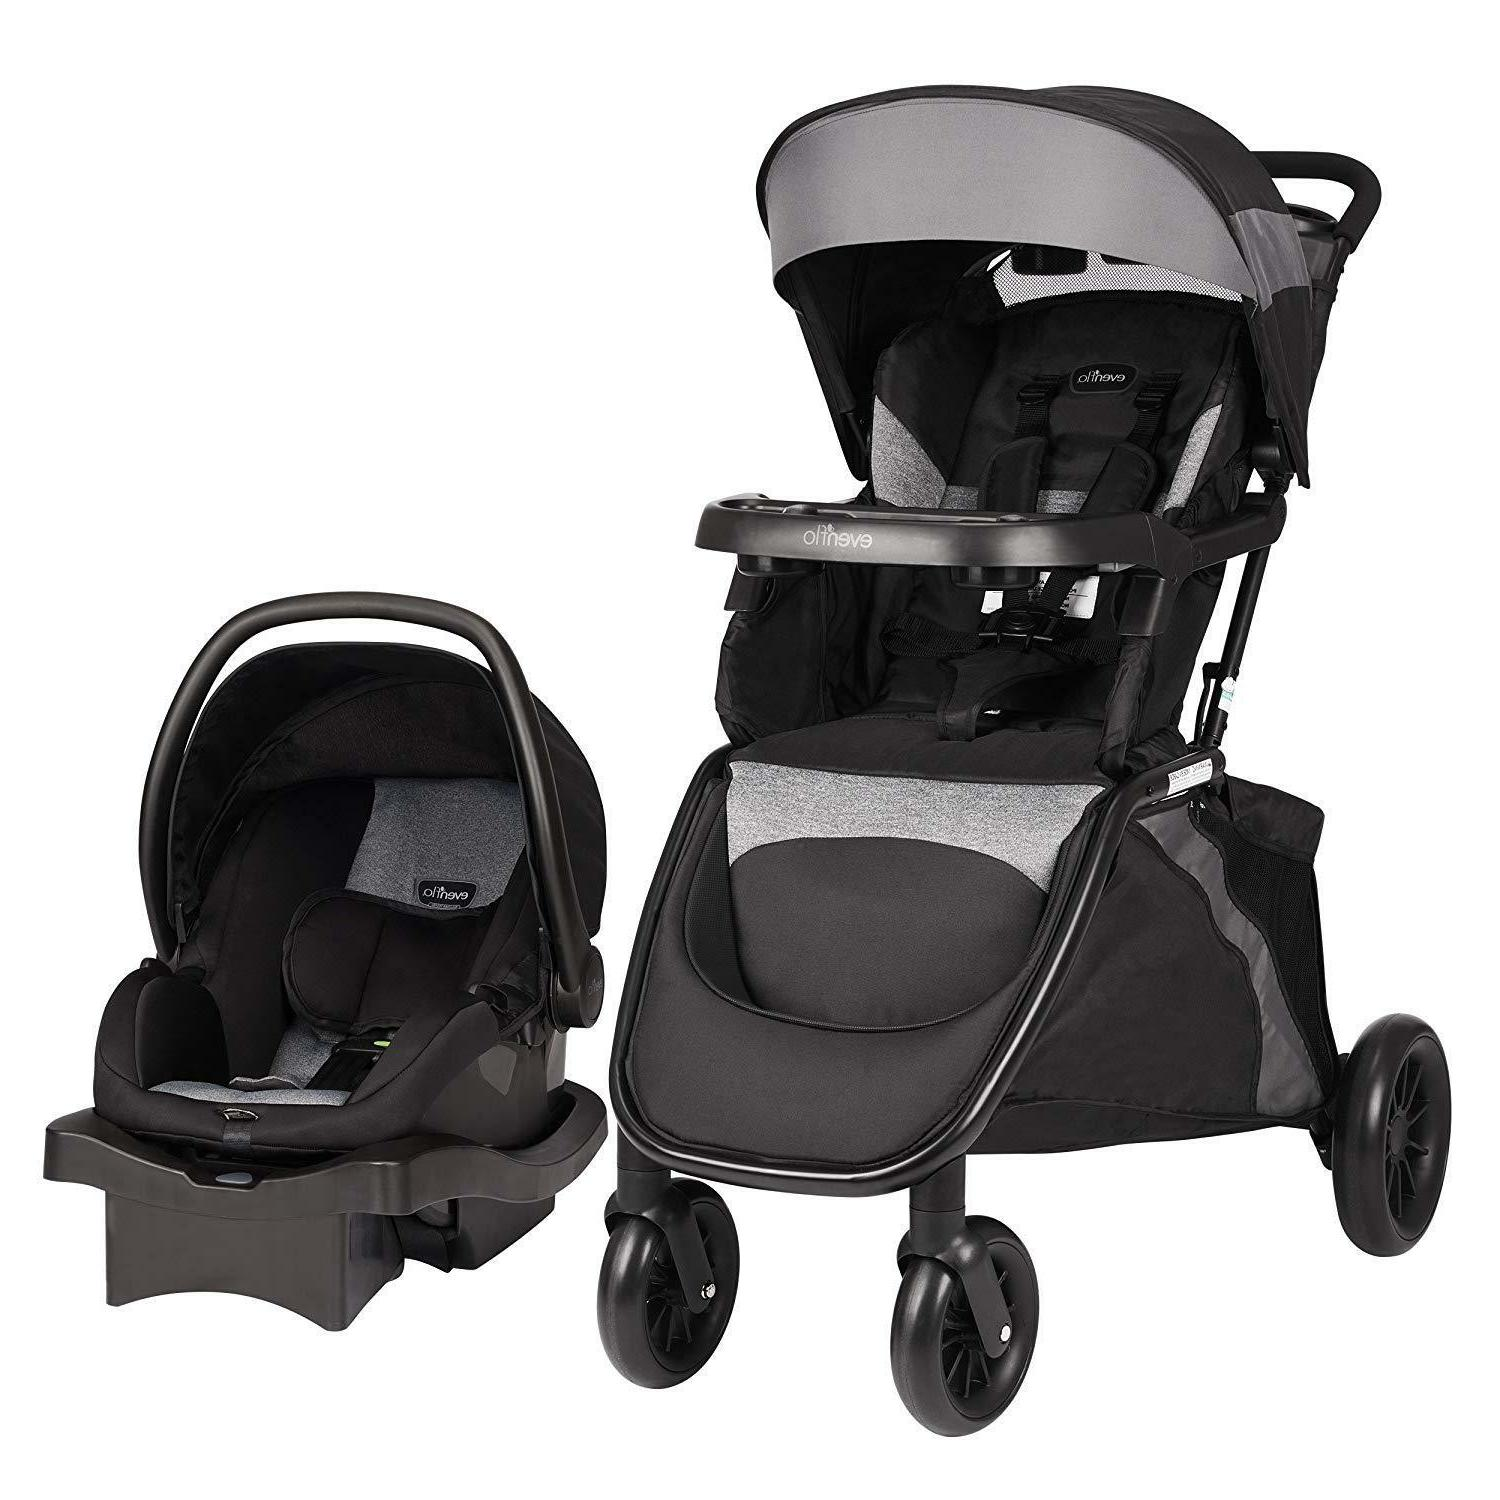 Evenflo Advanced SensorSafe Epic Travel System with LiteMax